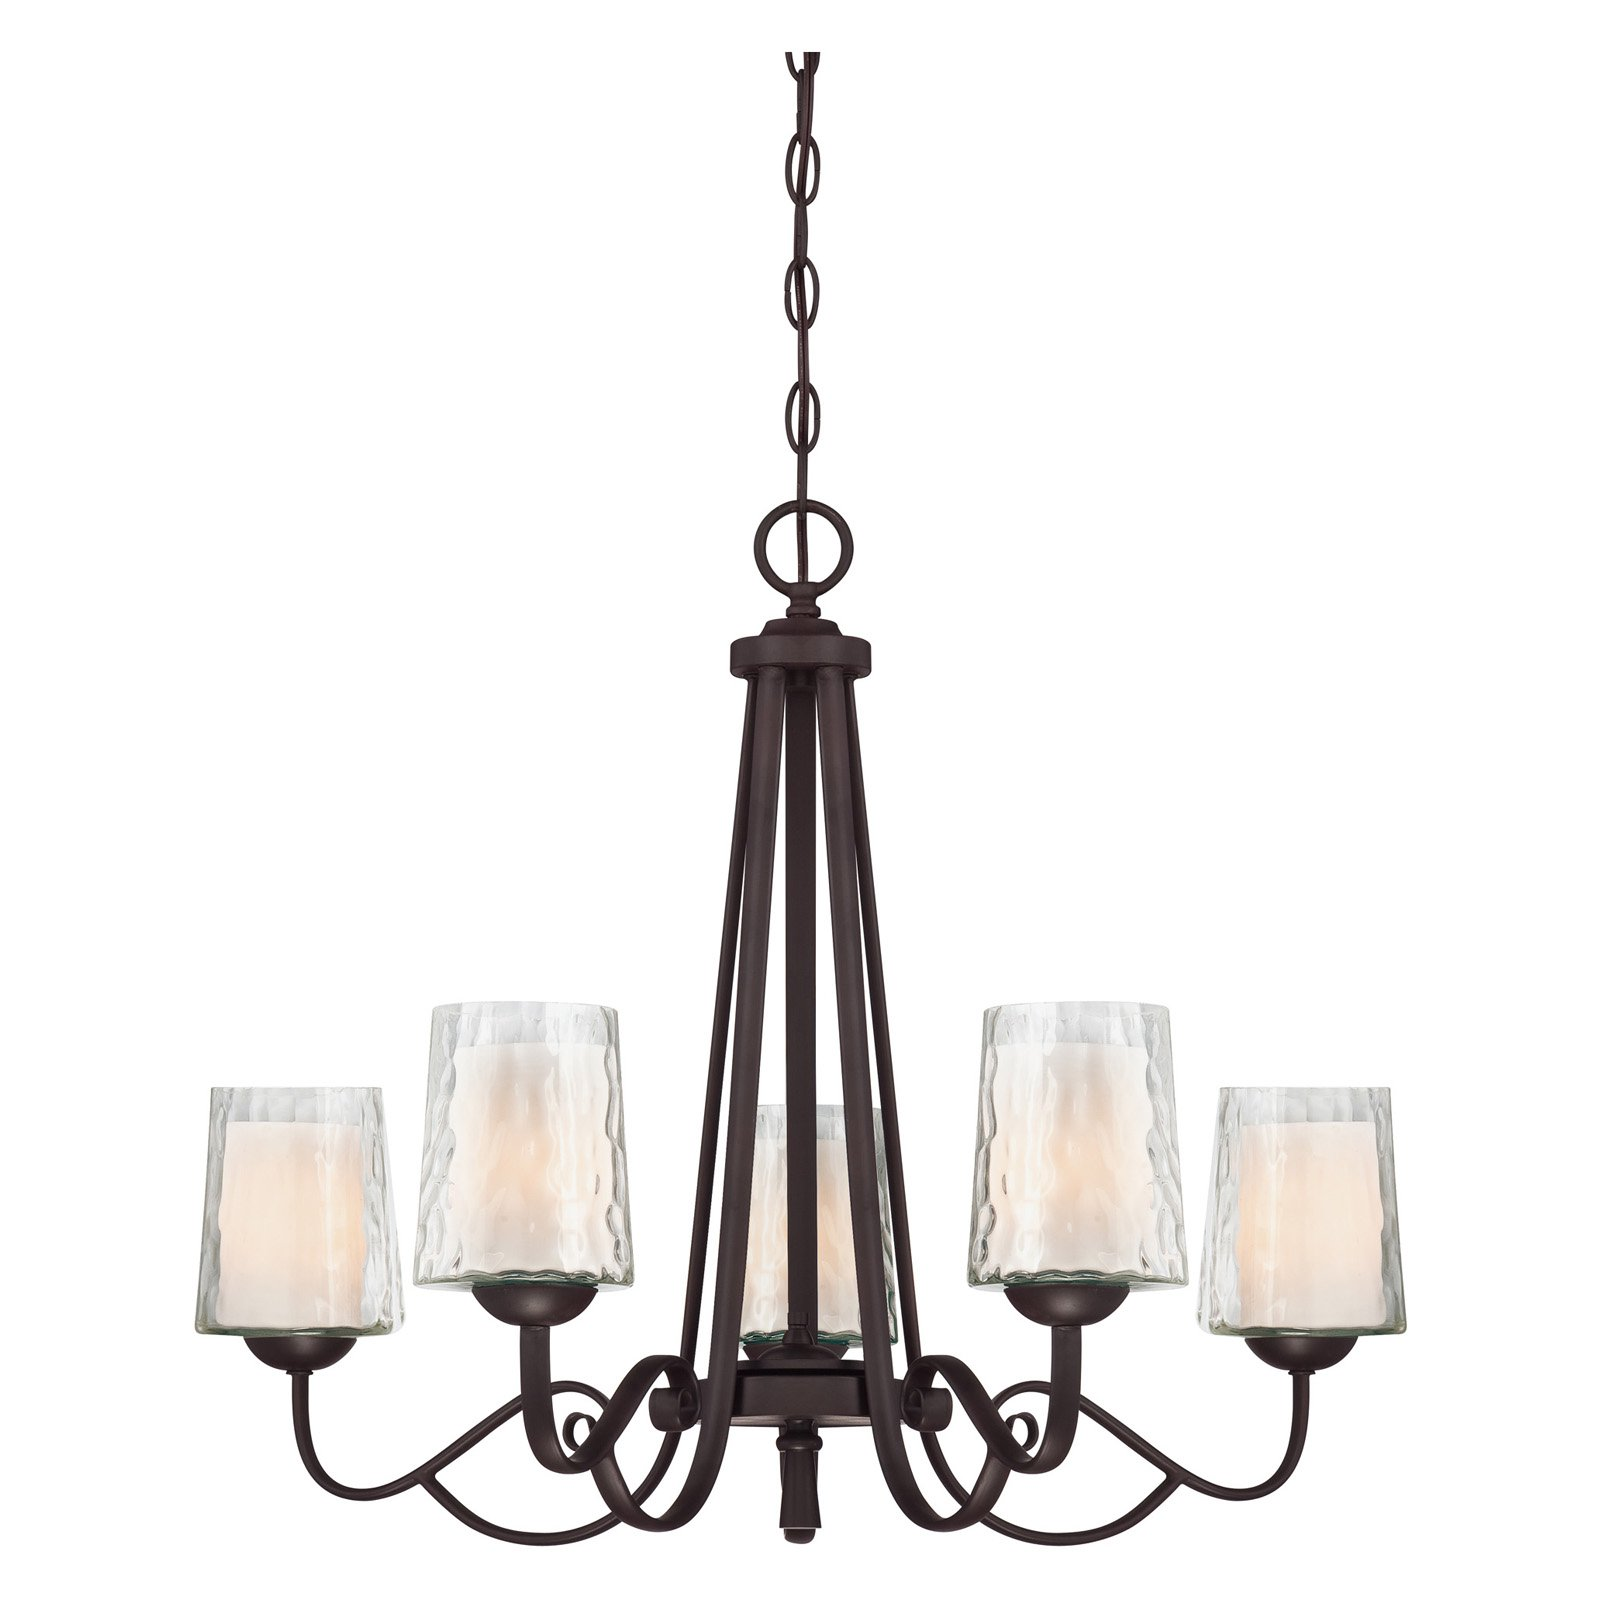 Quoizel Adonis ADS5005DC Chandelier by Quoizel